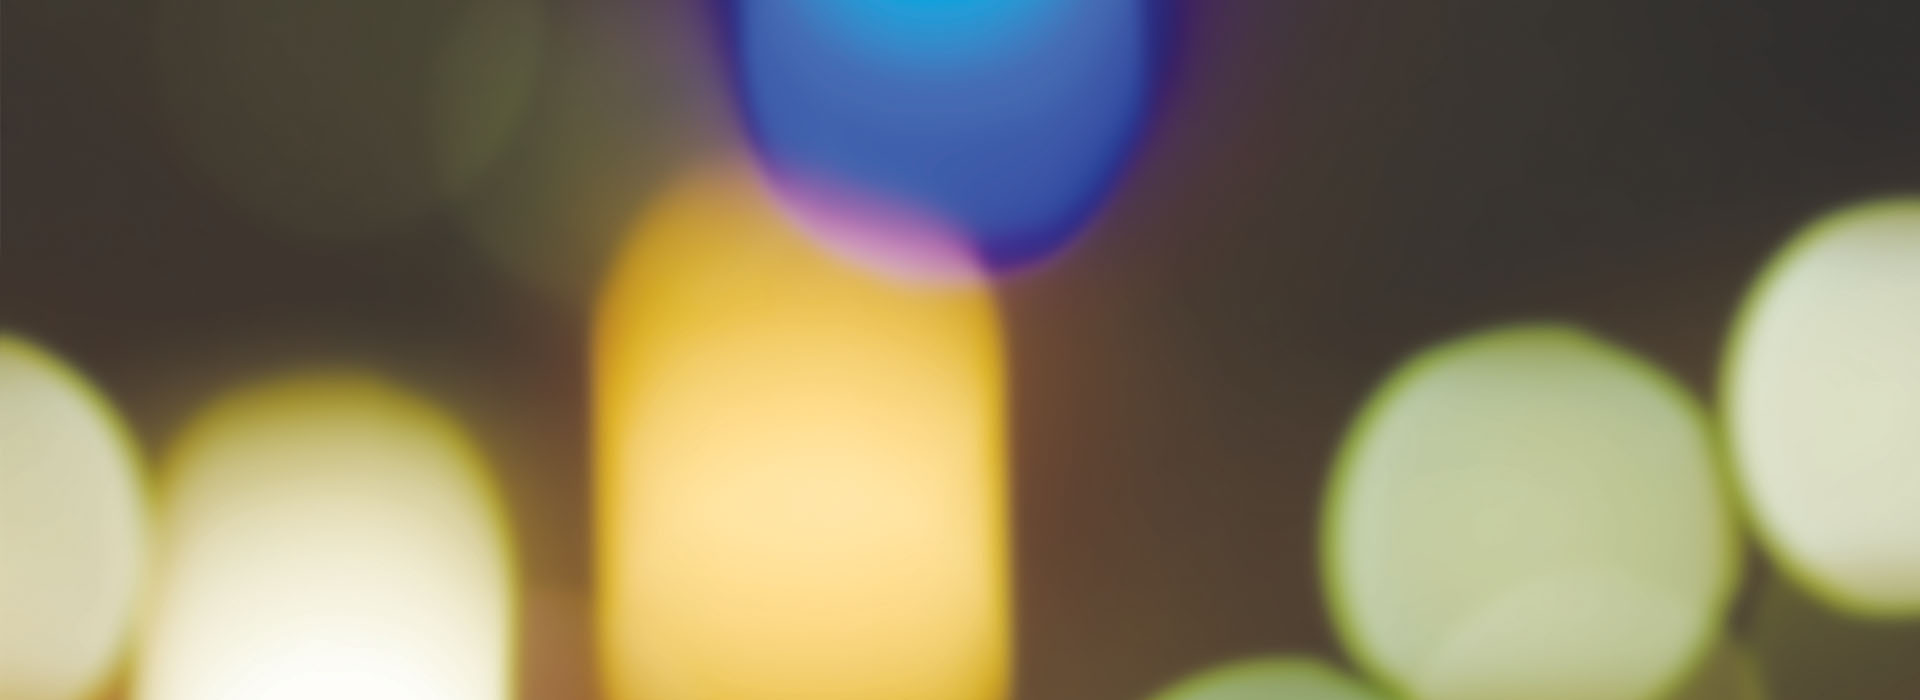 Colourful, blurred out blobs.